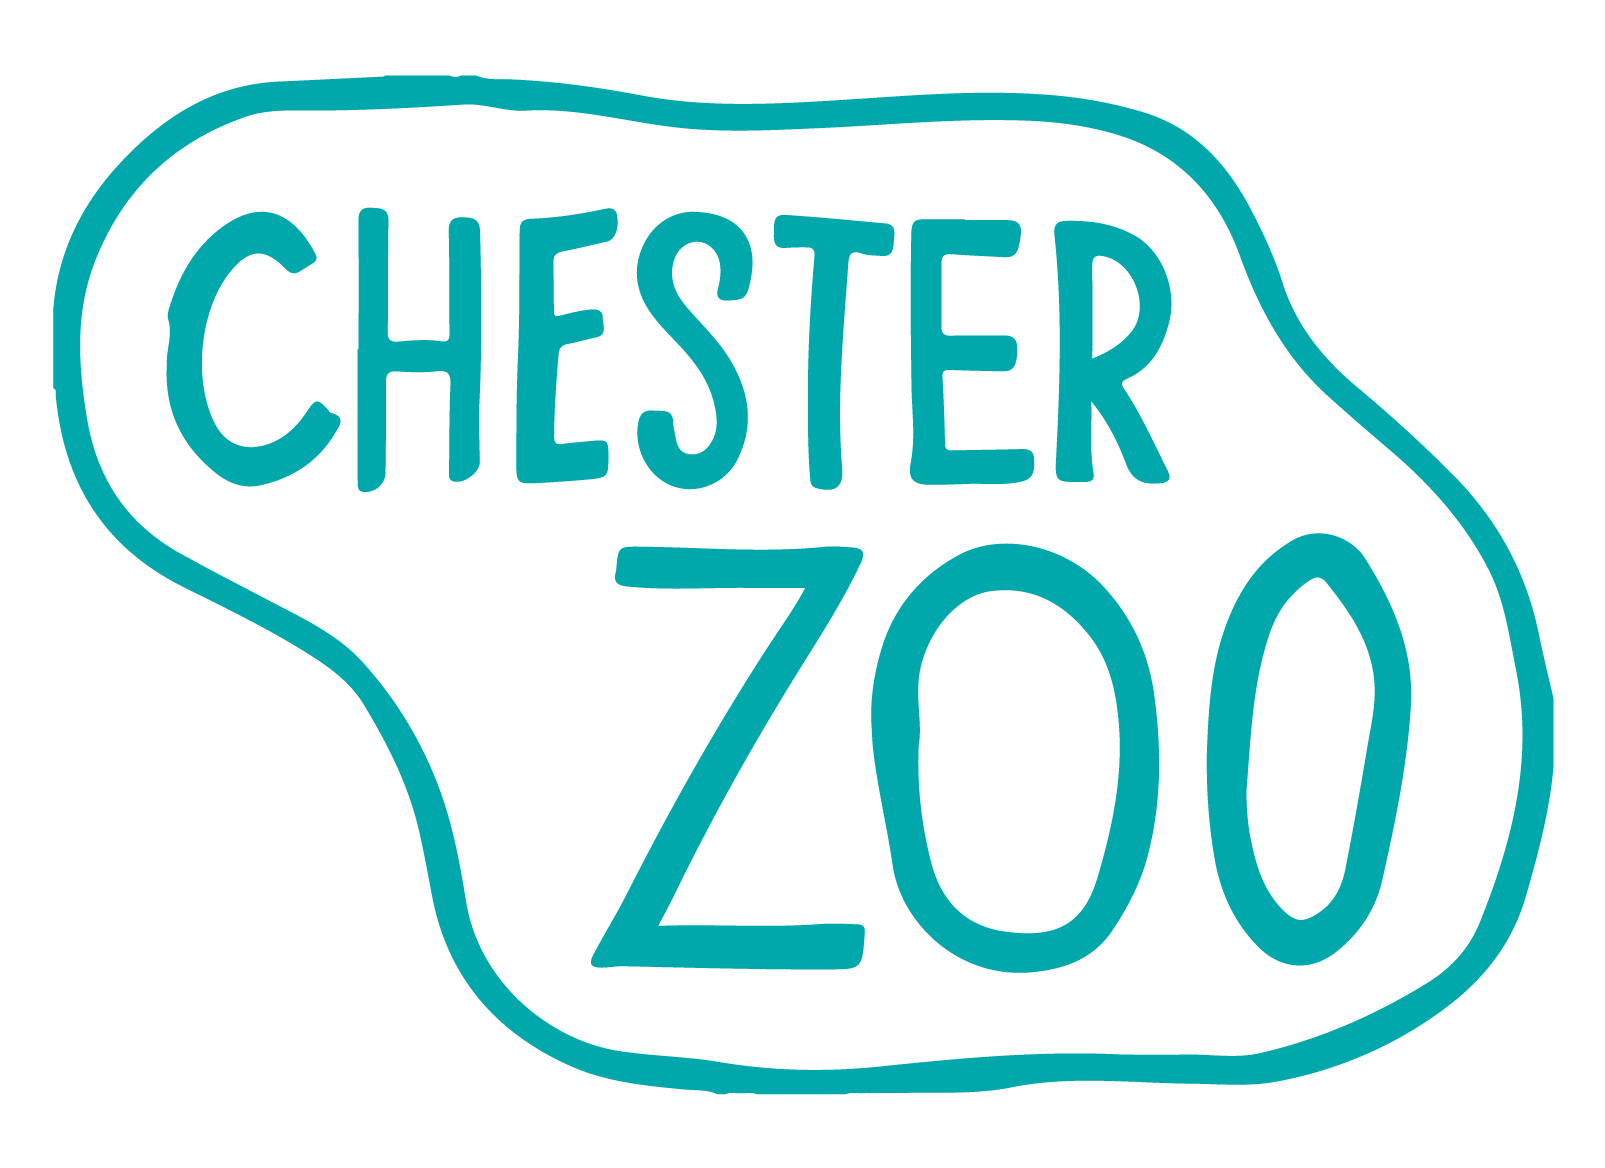 Chester Zoo Logo (No Background)